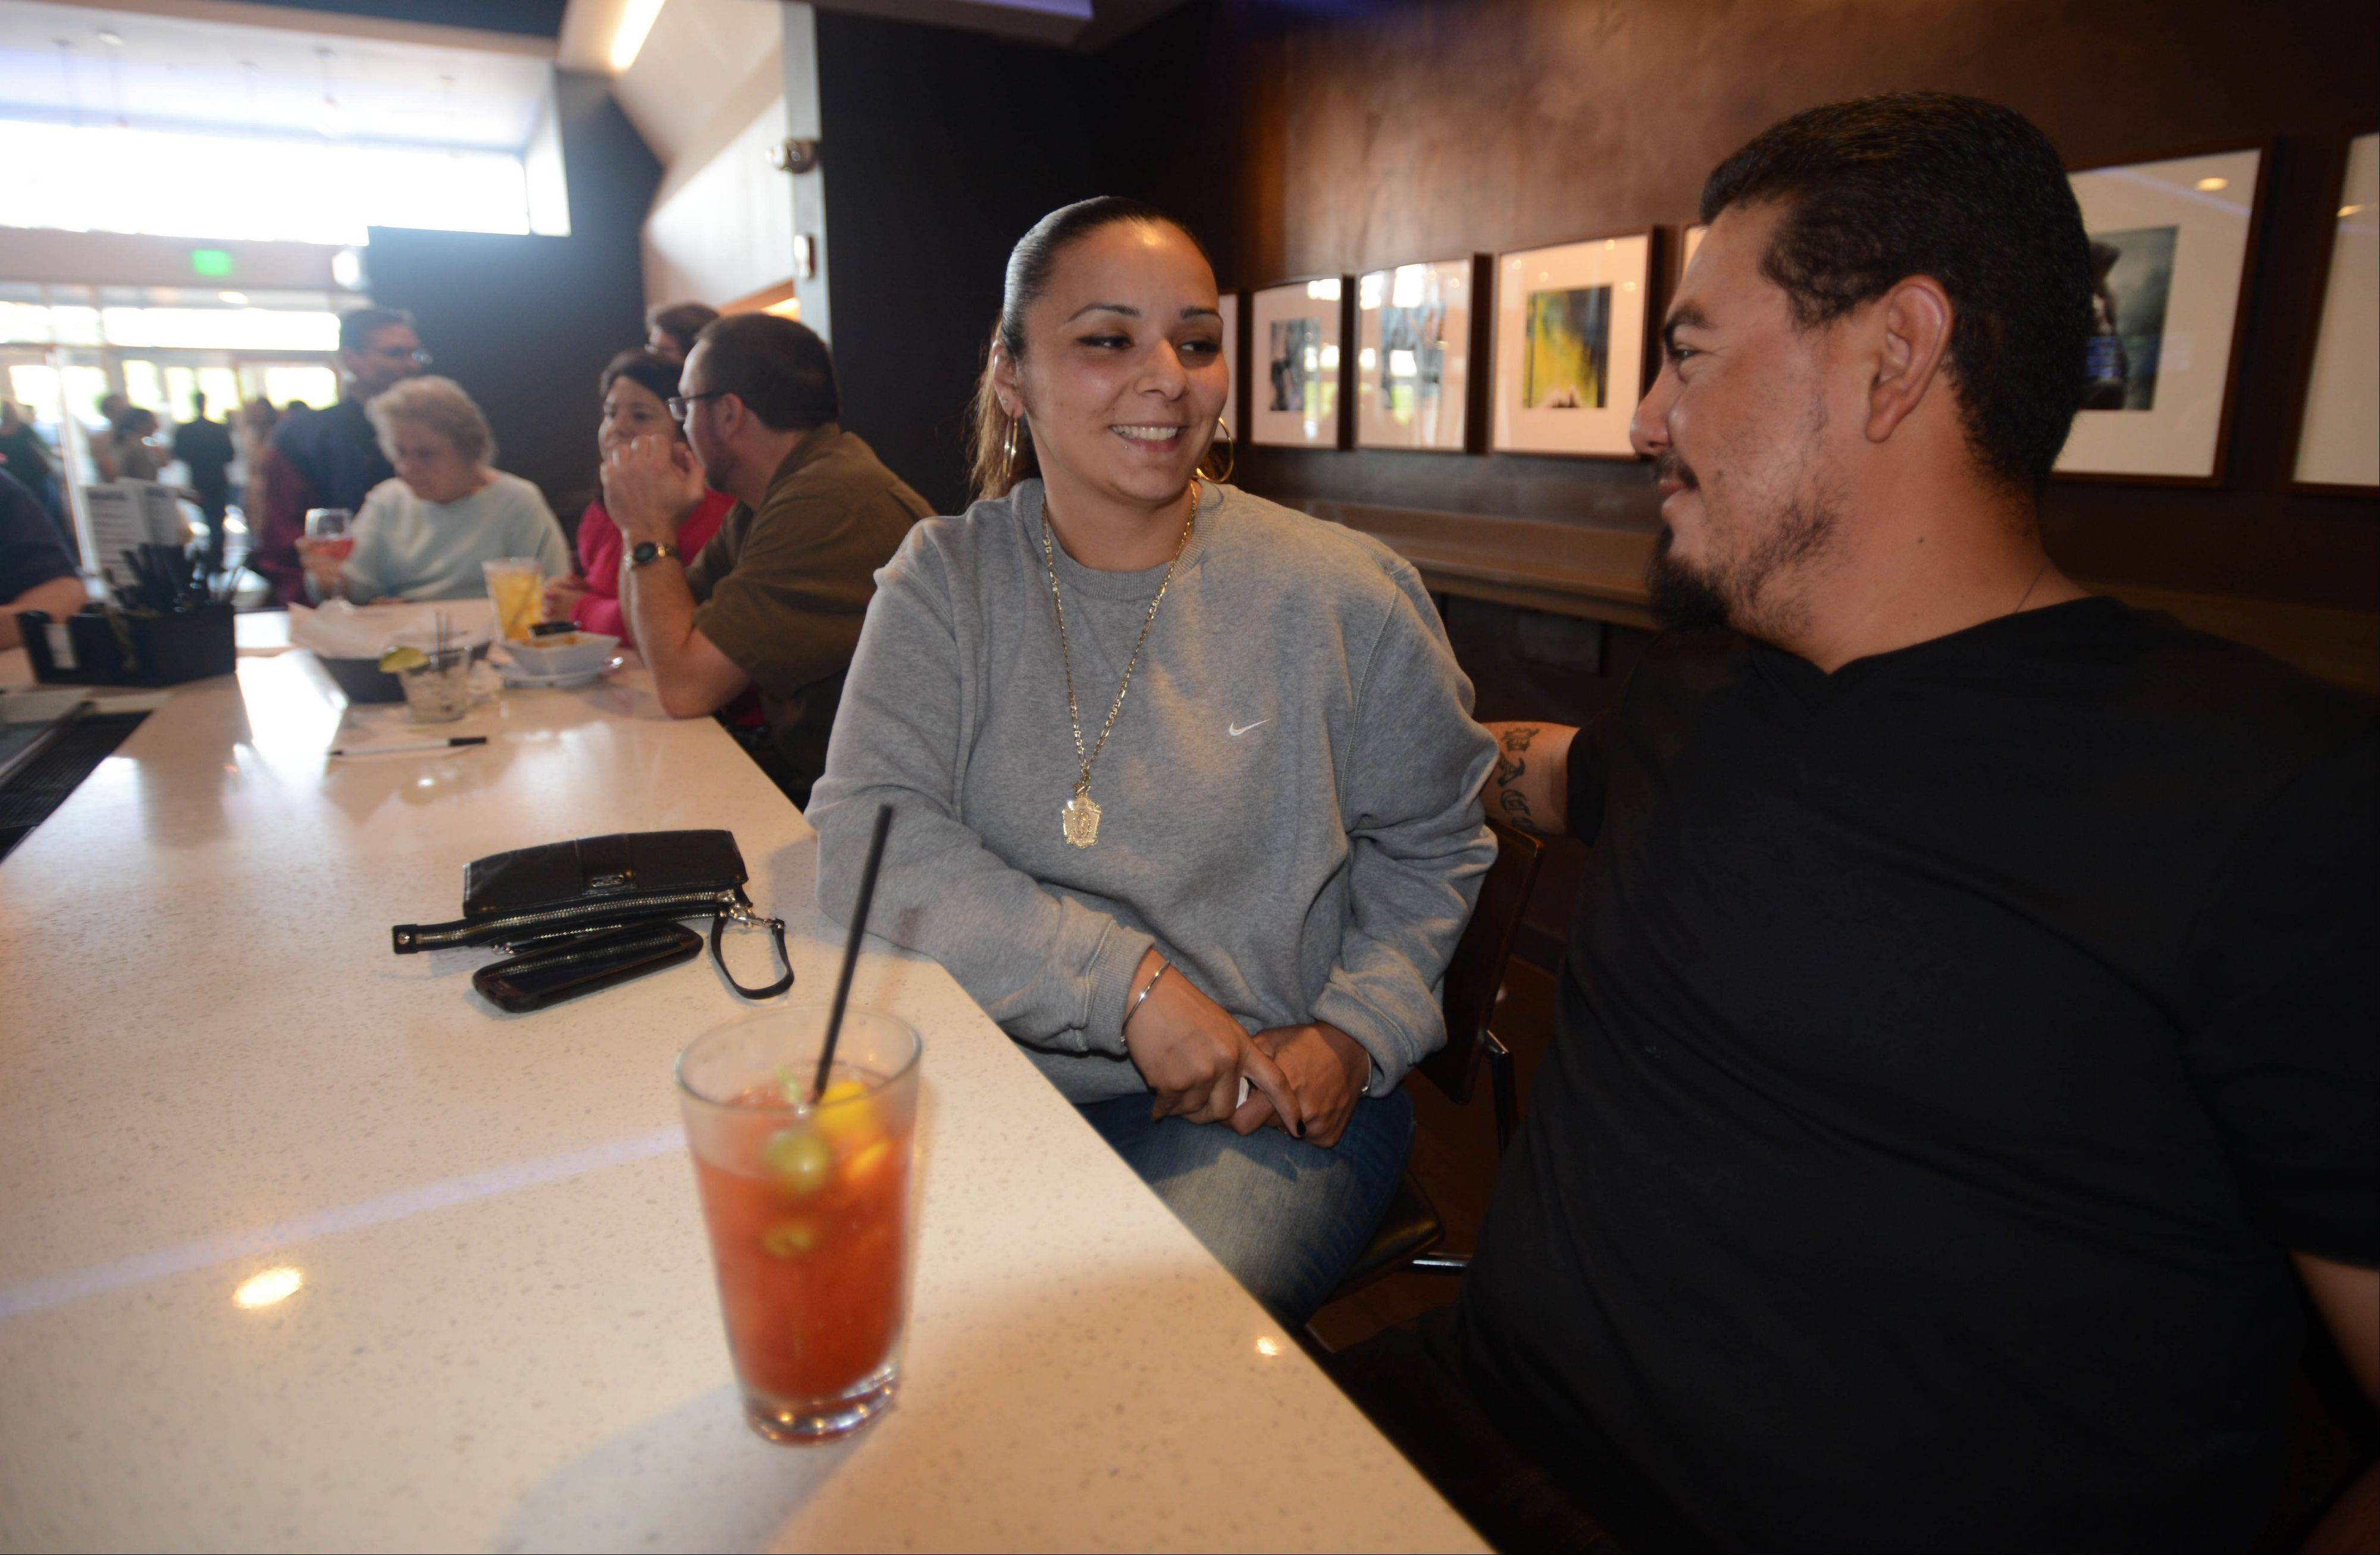 Jackie Plascencia and her husband Paco have a drink before catching a movie at Studio Movie Grill in Wheaton.